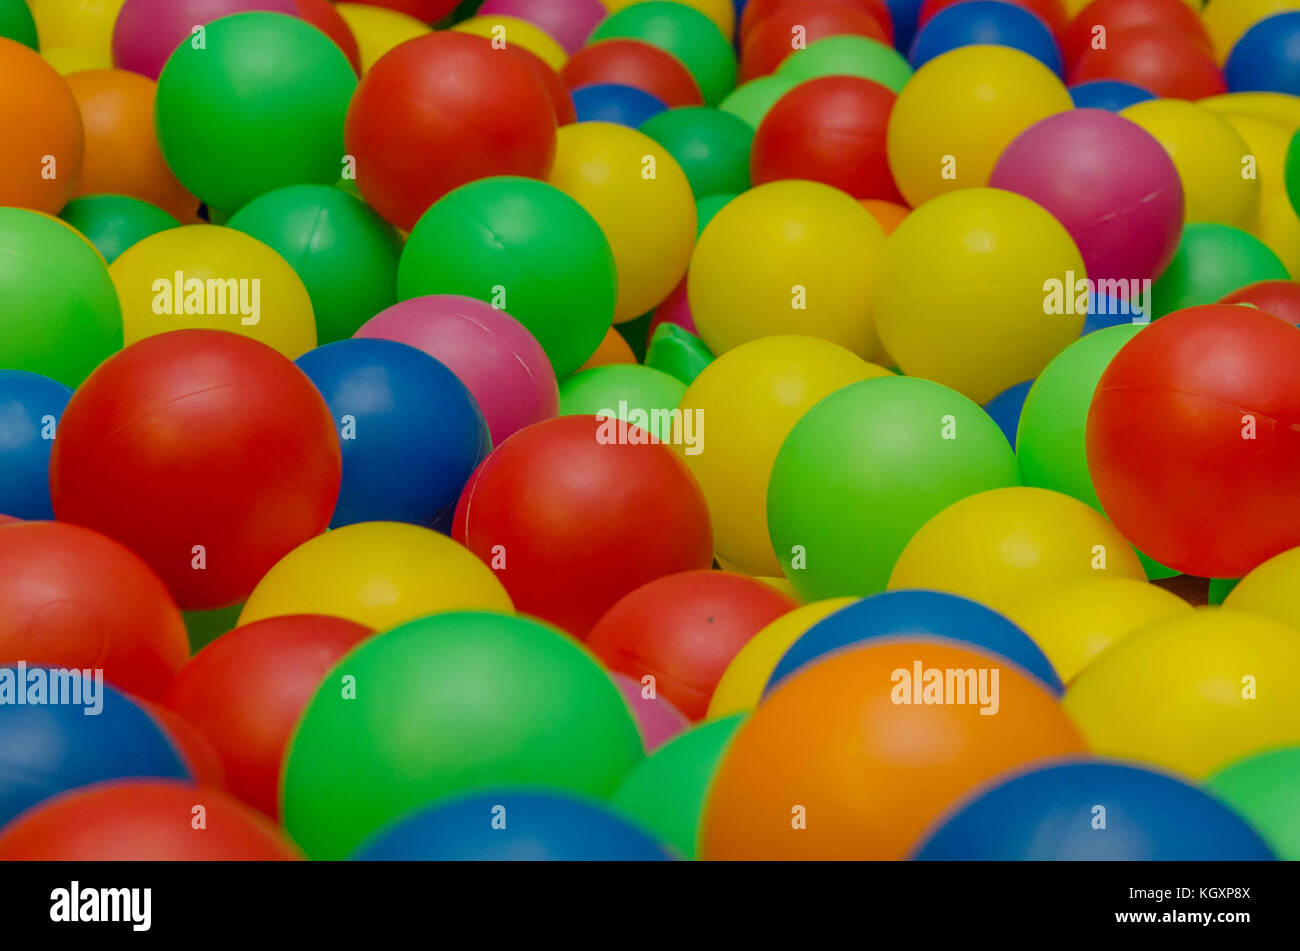 multi-colored balls on the playground horozontal - Stock Image